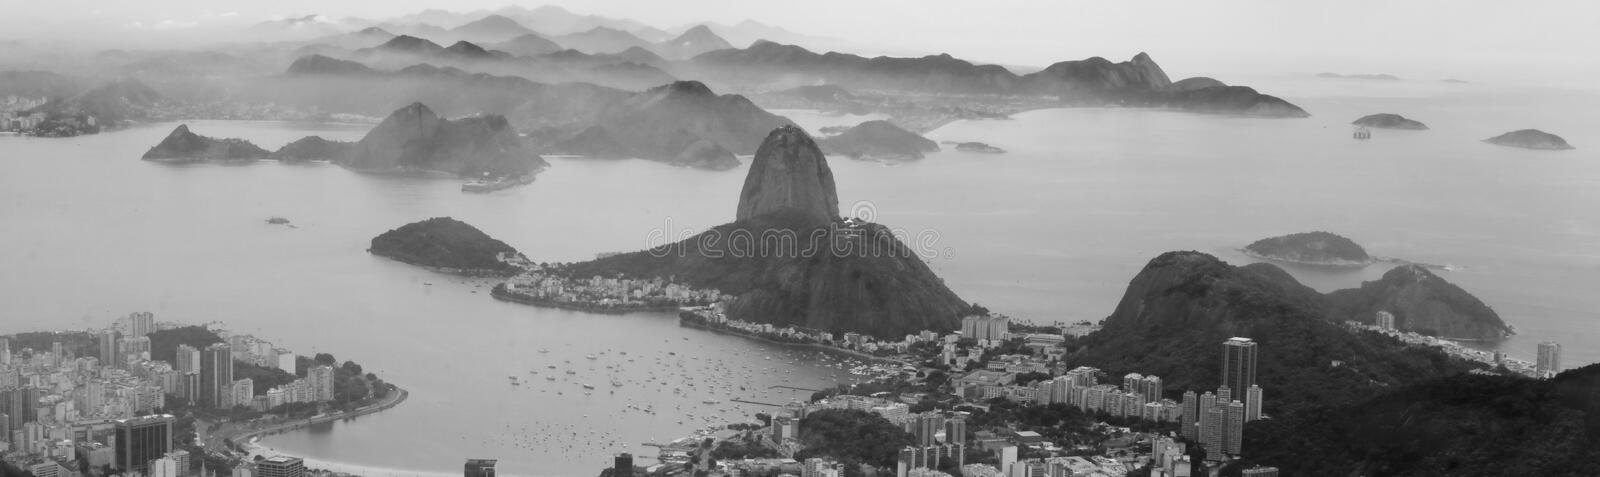 Download Sugar Loaf Panorama Picture Stock Image - Image: 13298325